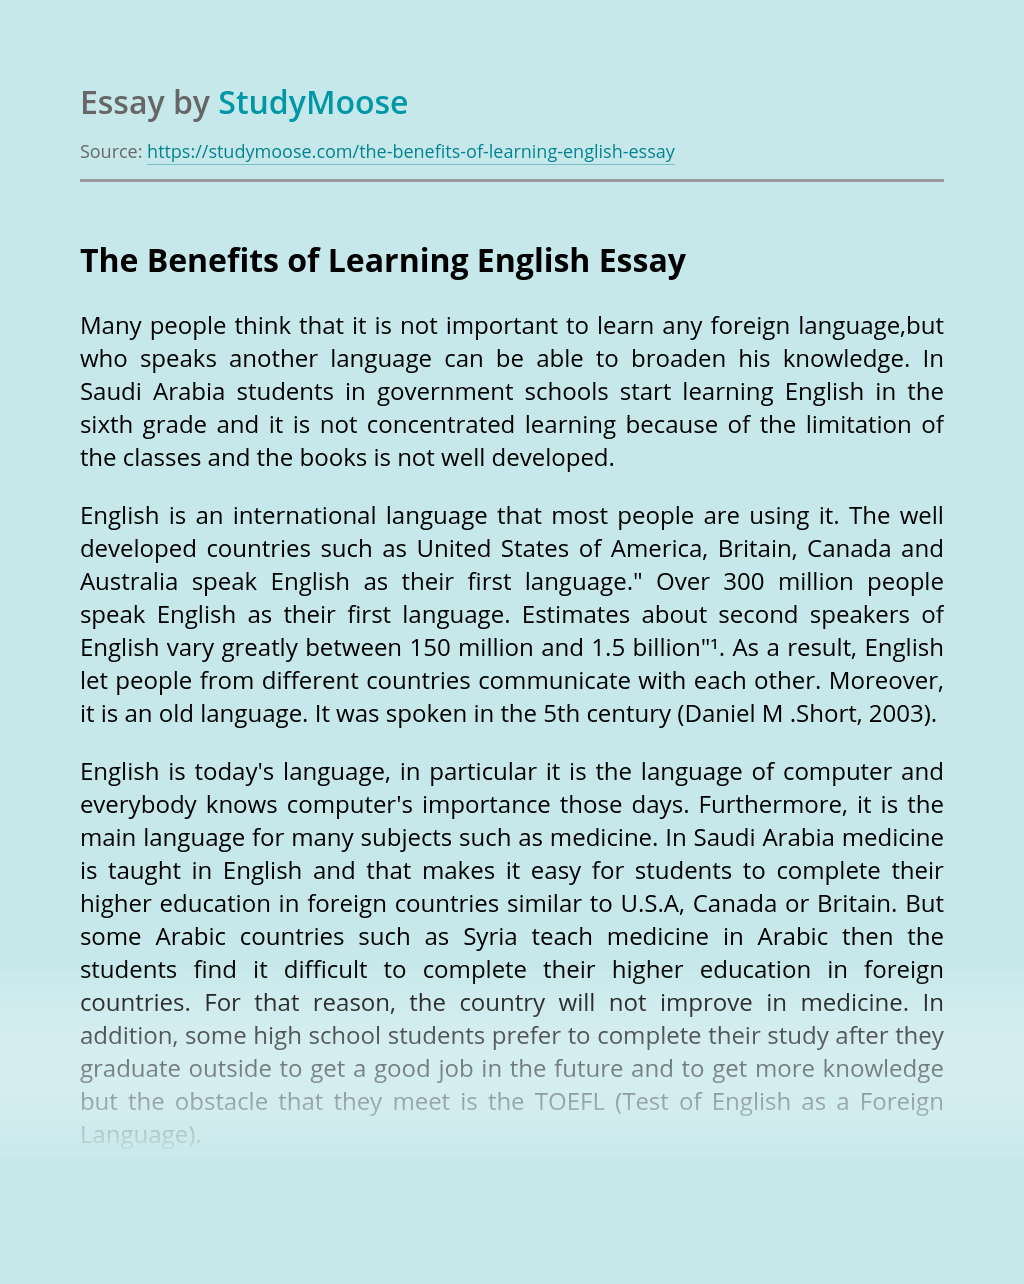 The Benefits of Learning English